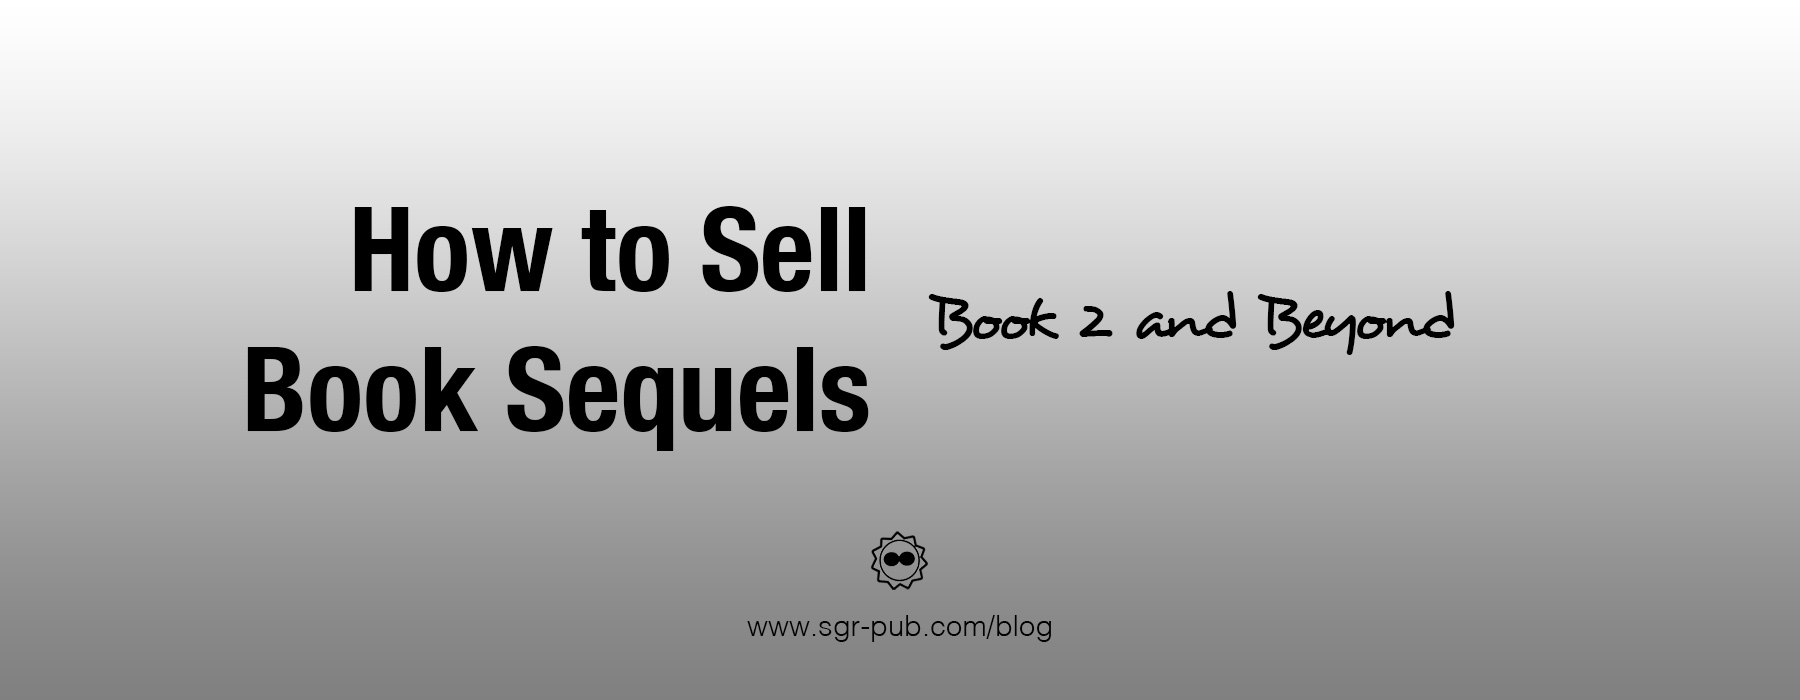 How to sell book sequels - book 2 and beyond